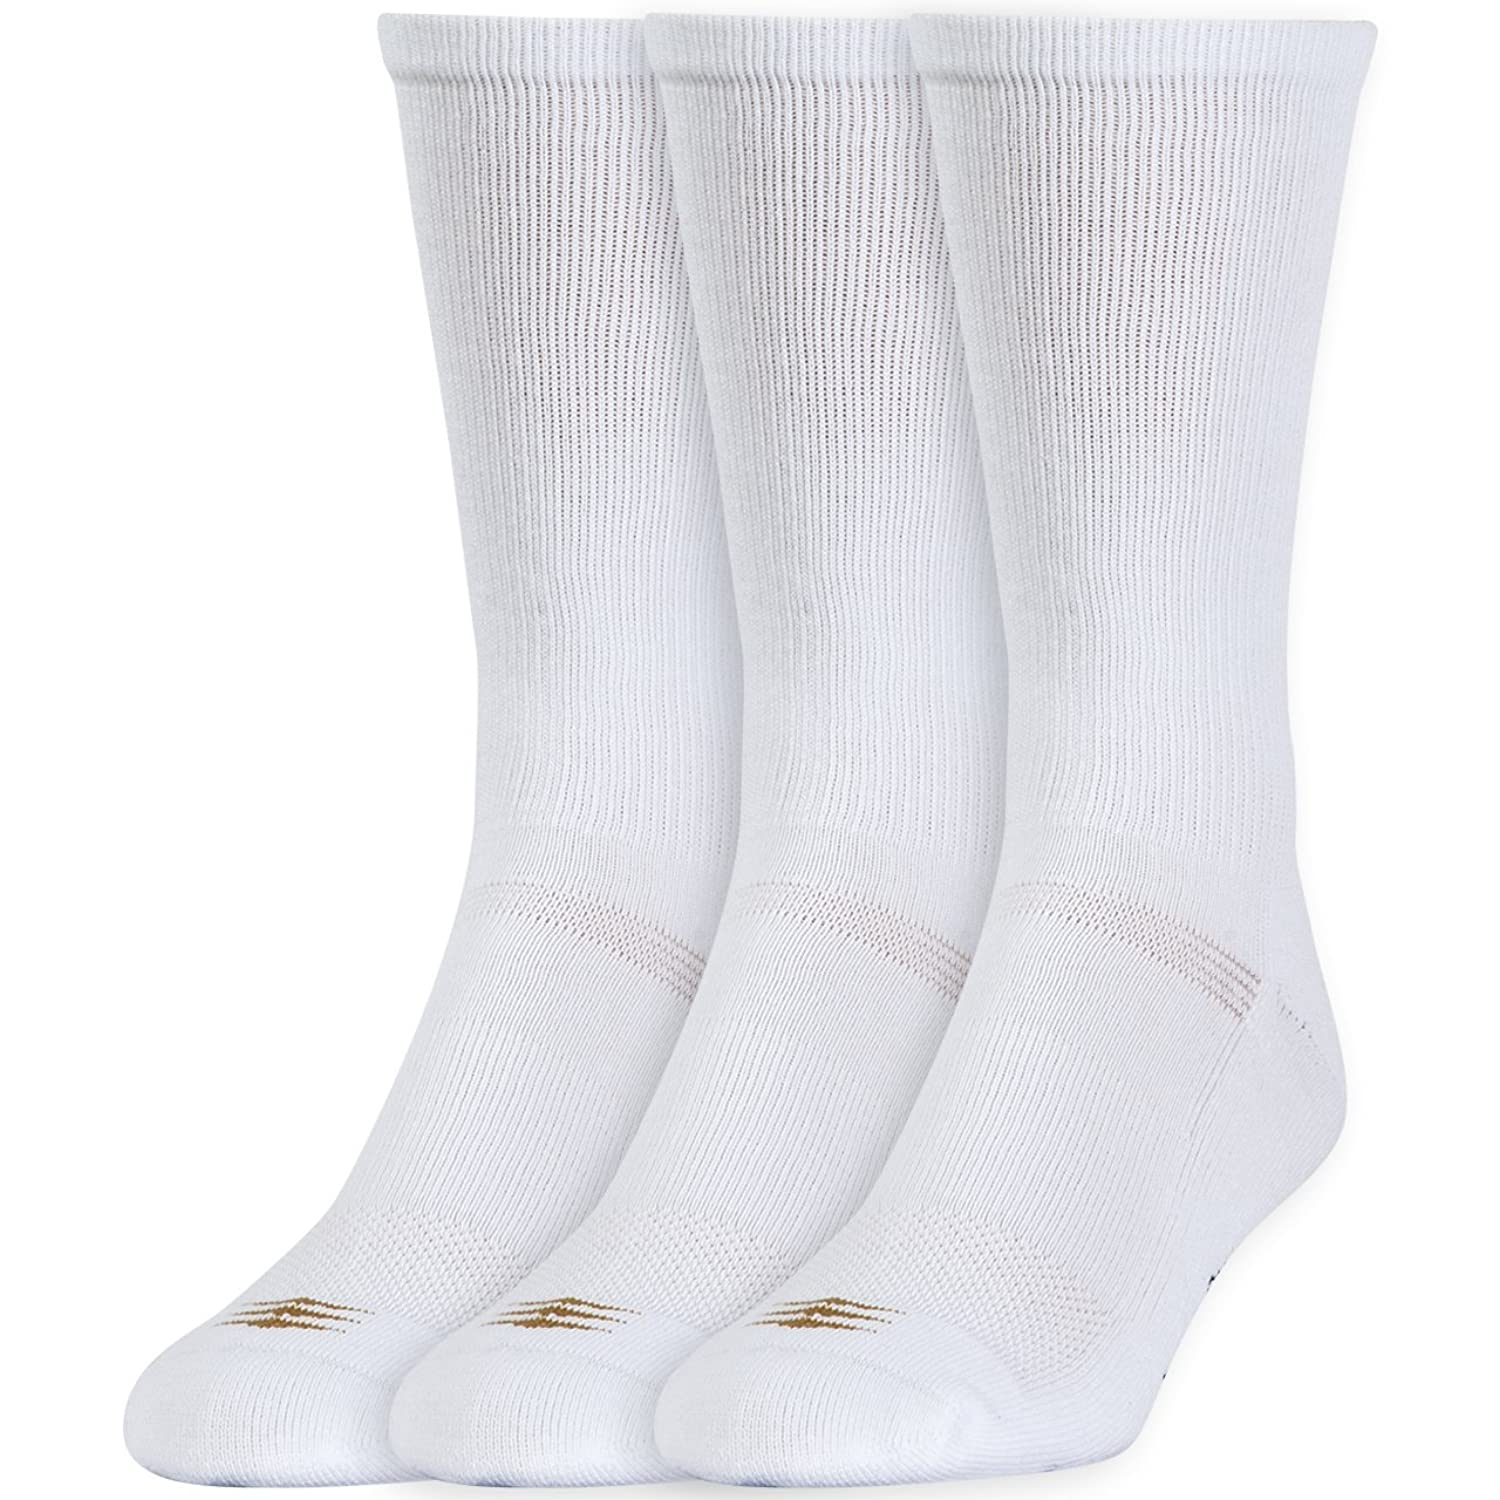 3-Prs. Powersox CoolMax Crew Socks